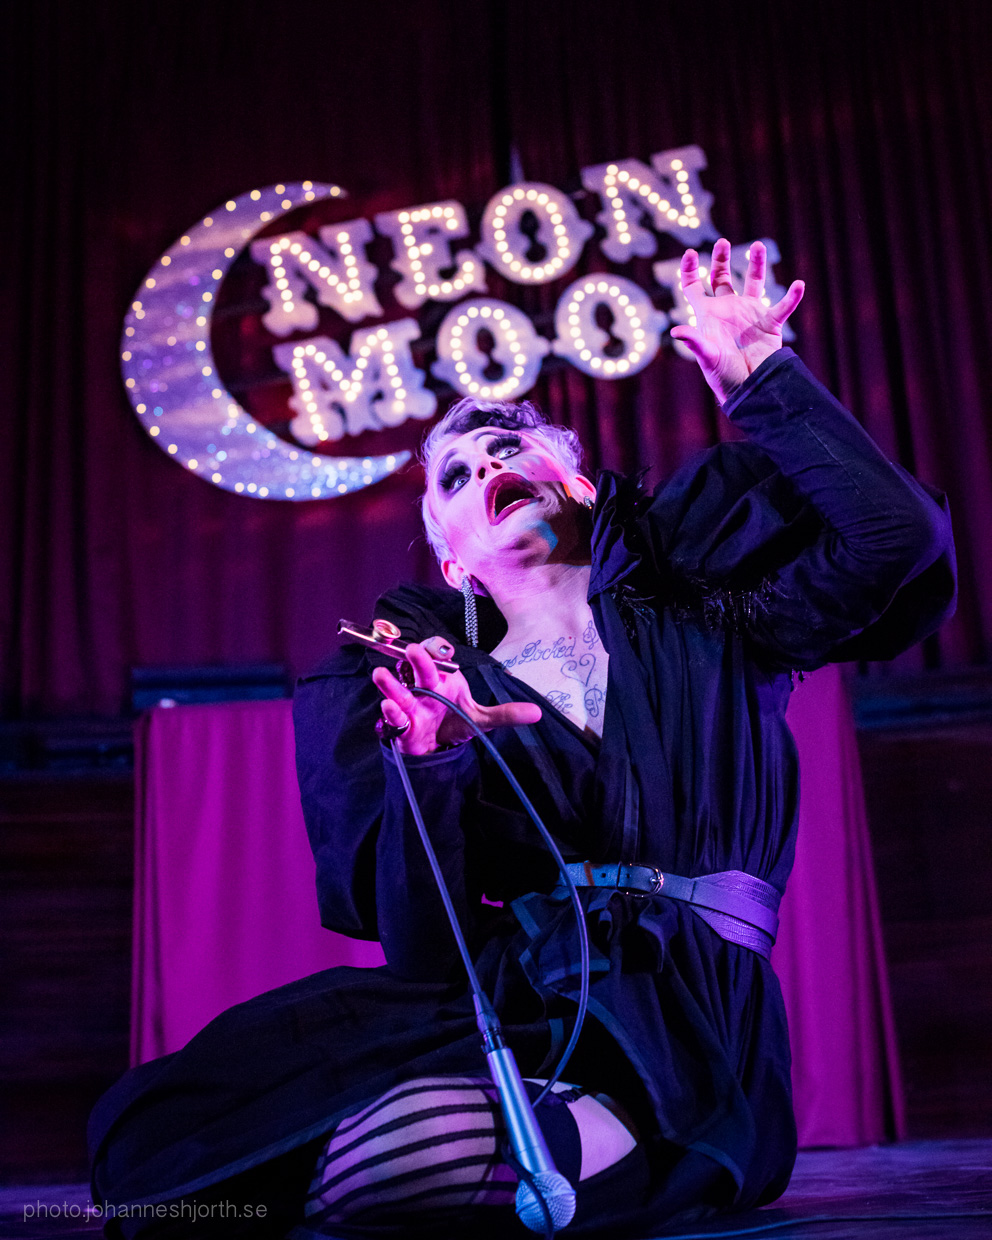 hjorthmedh-neon-moon-cambridge-halloween-ball-2015-108